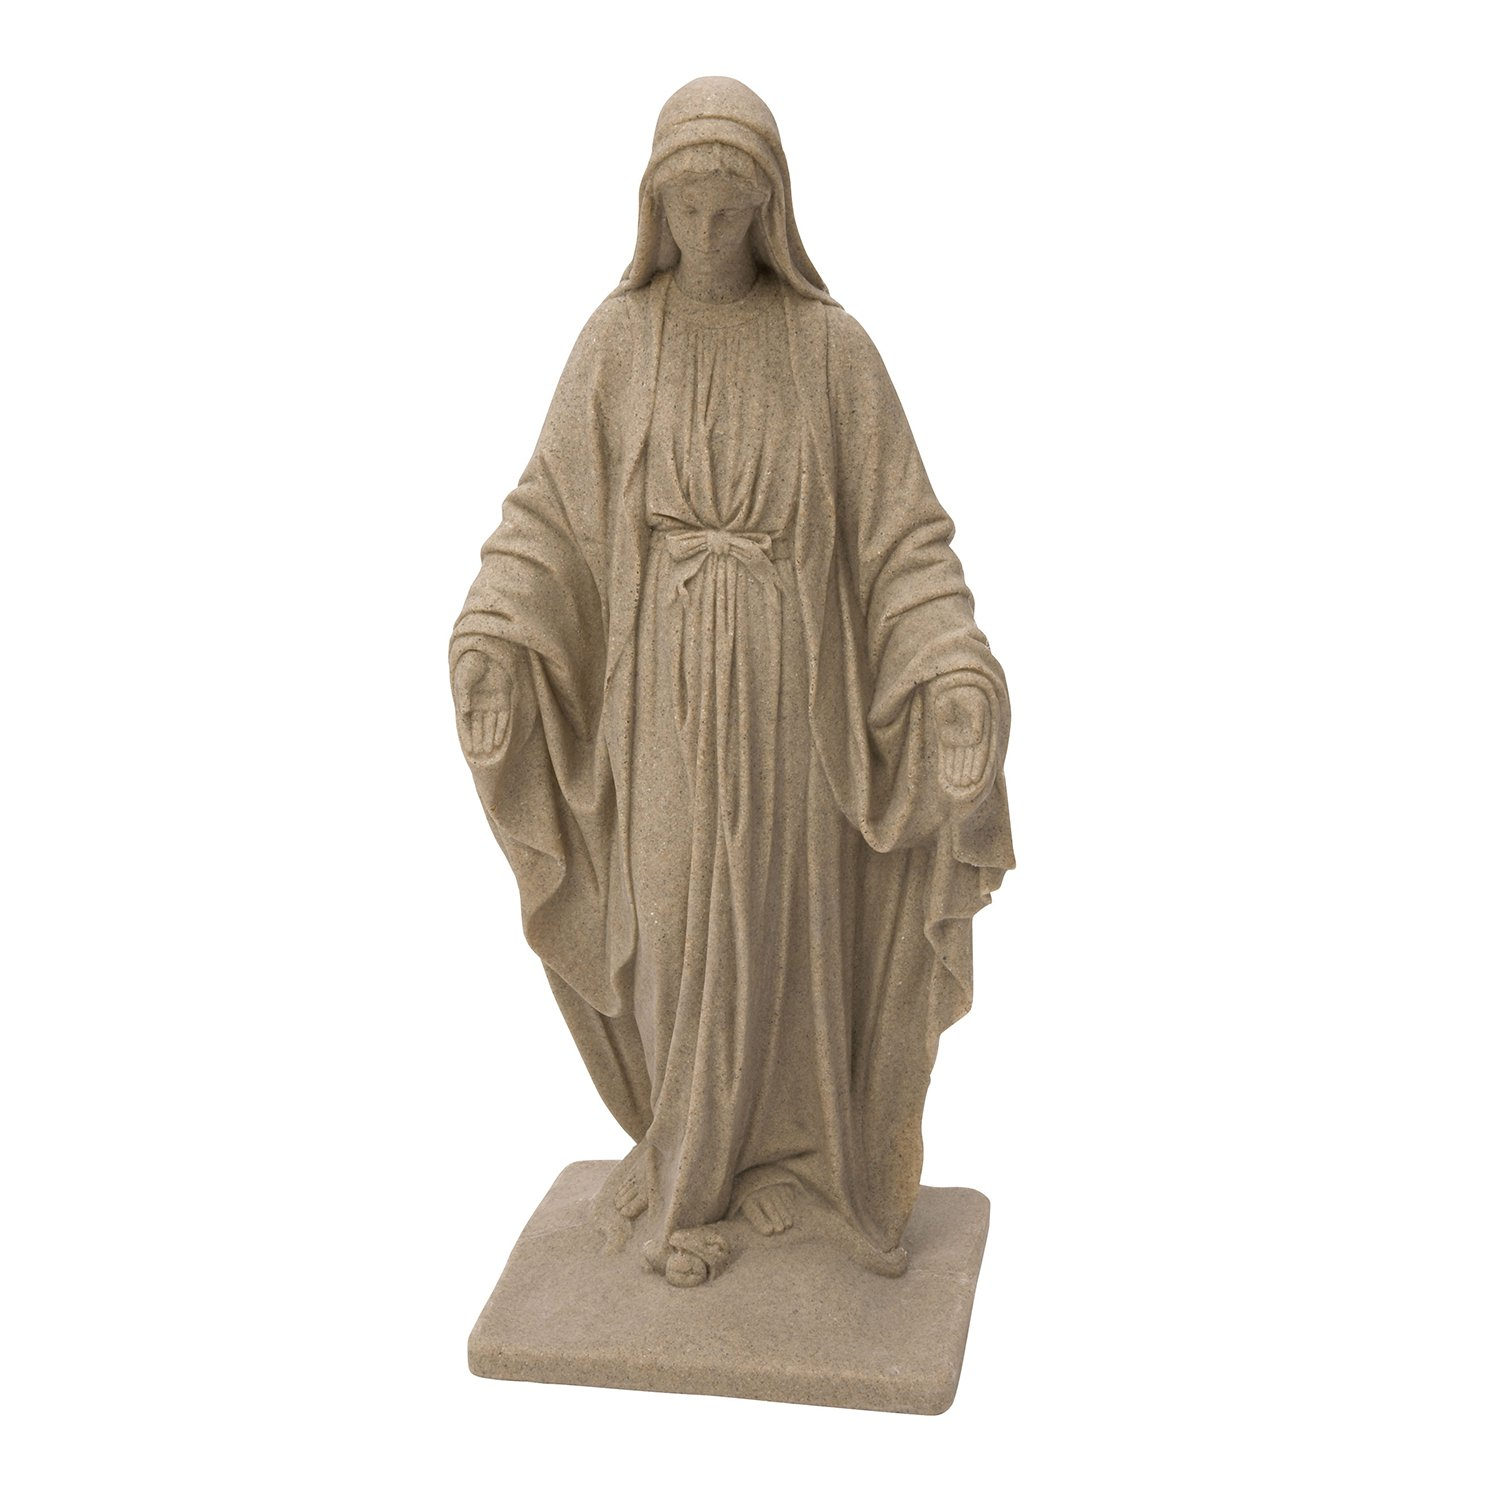 Emsco Group Virgin Mary Statue - Natural Sandstone Appearance - Made of Resin - Lightweight - 34'' Height